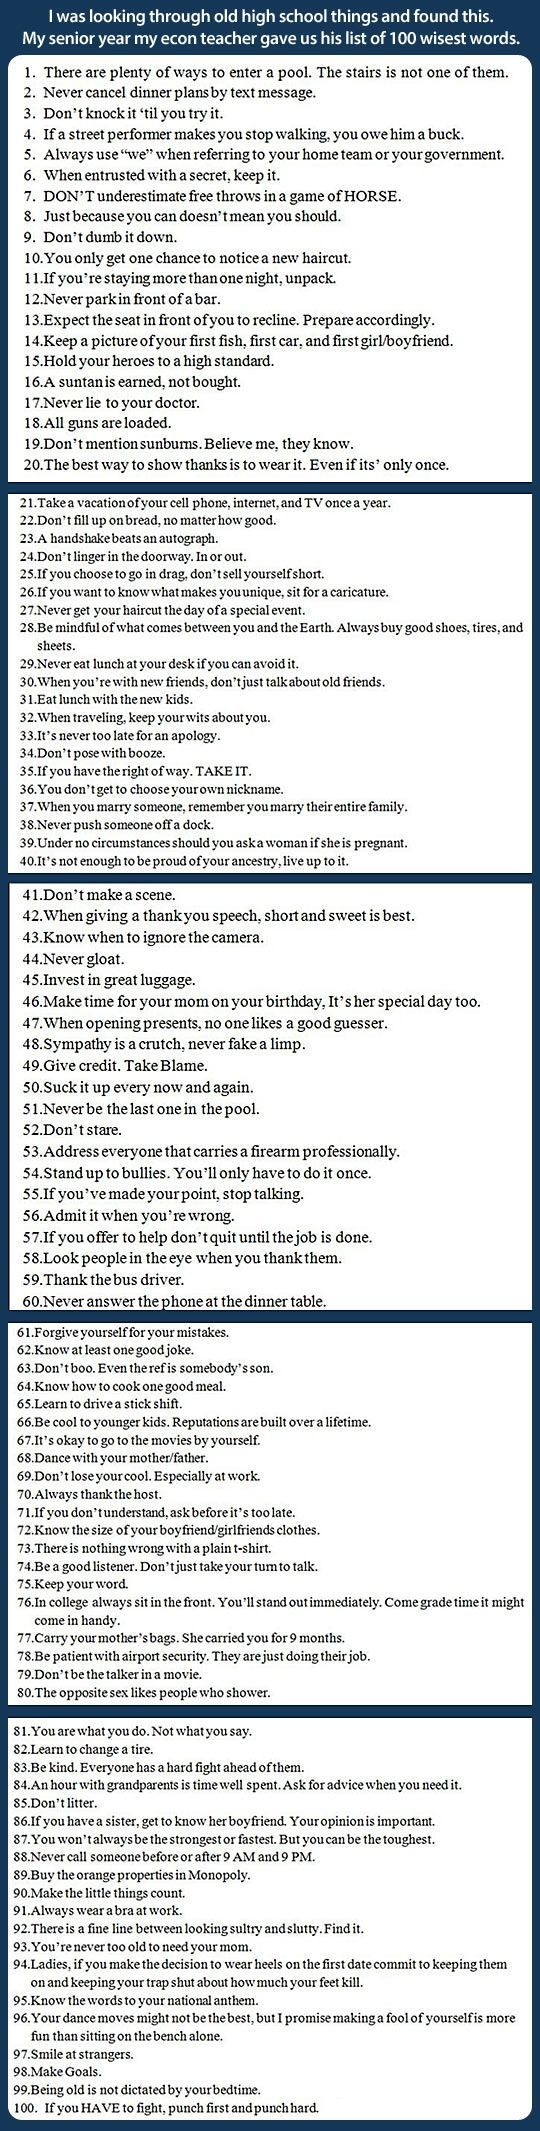 A list of 100 wisest words… ( I generally hate these kinds of things, but there's quite a bit of wisdom here).